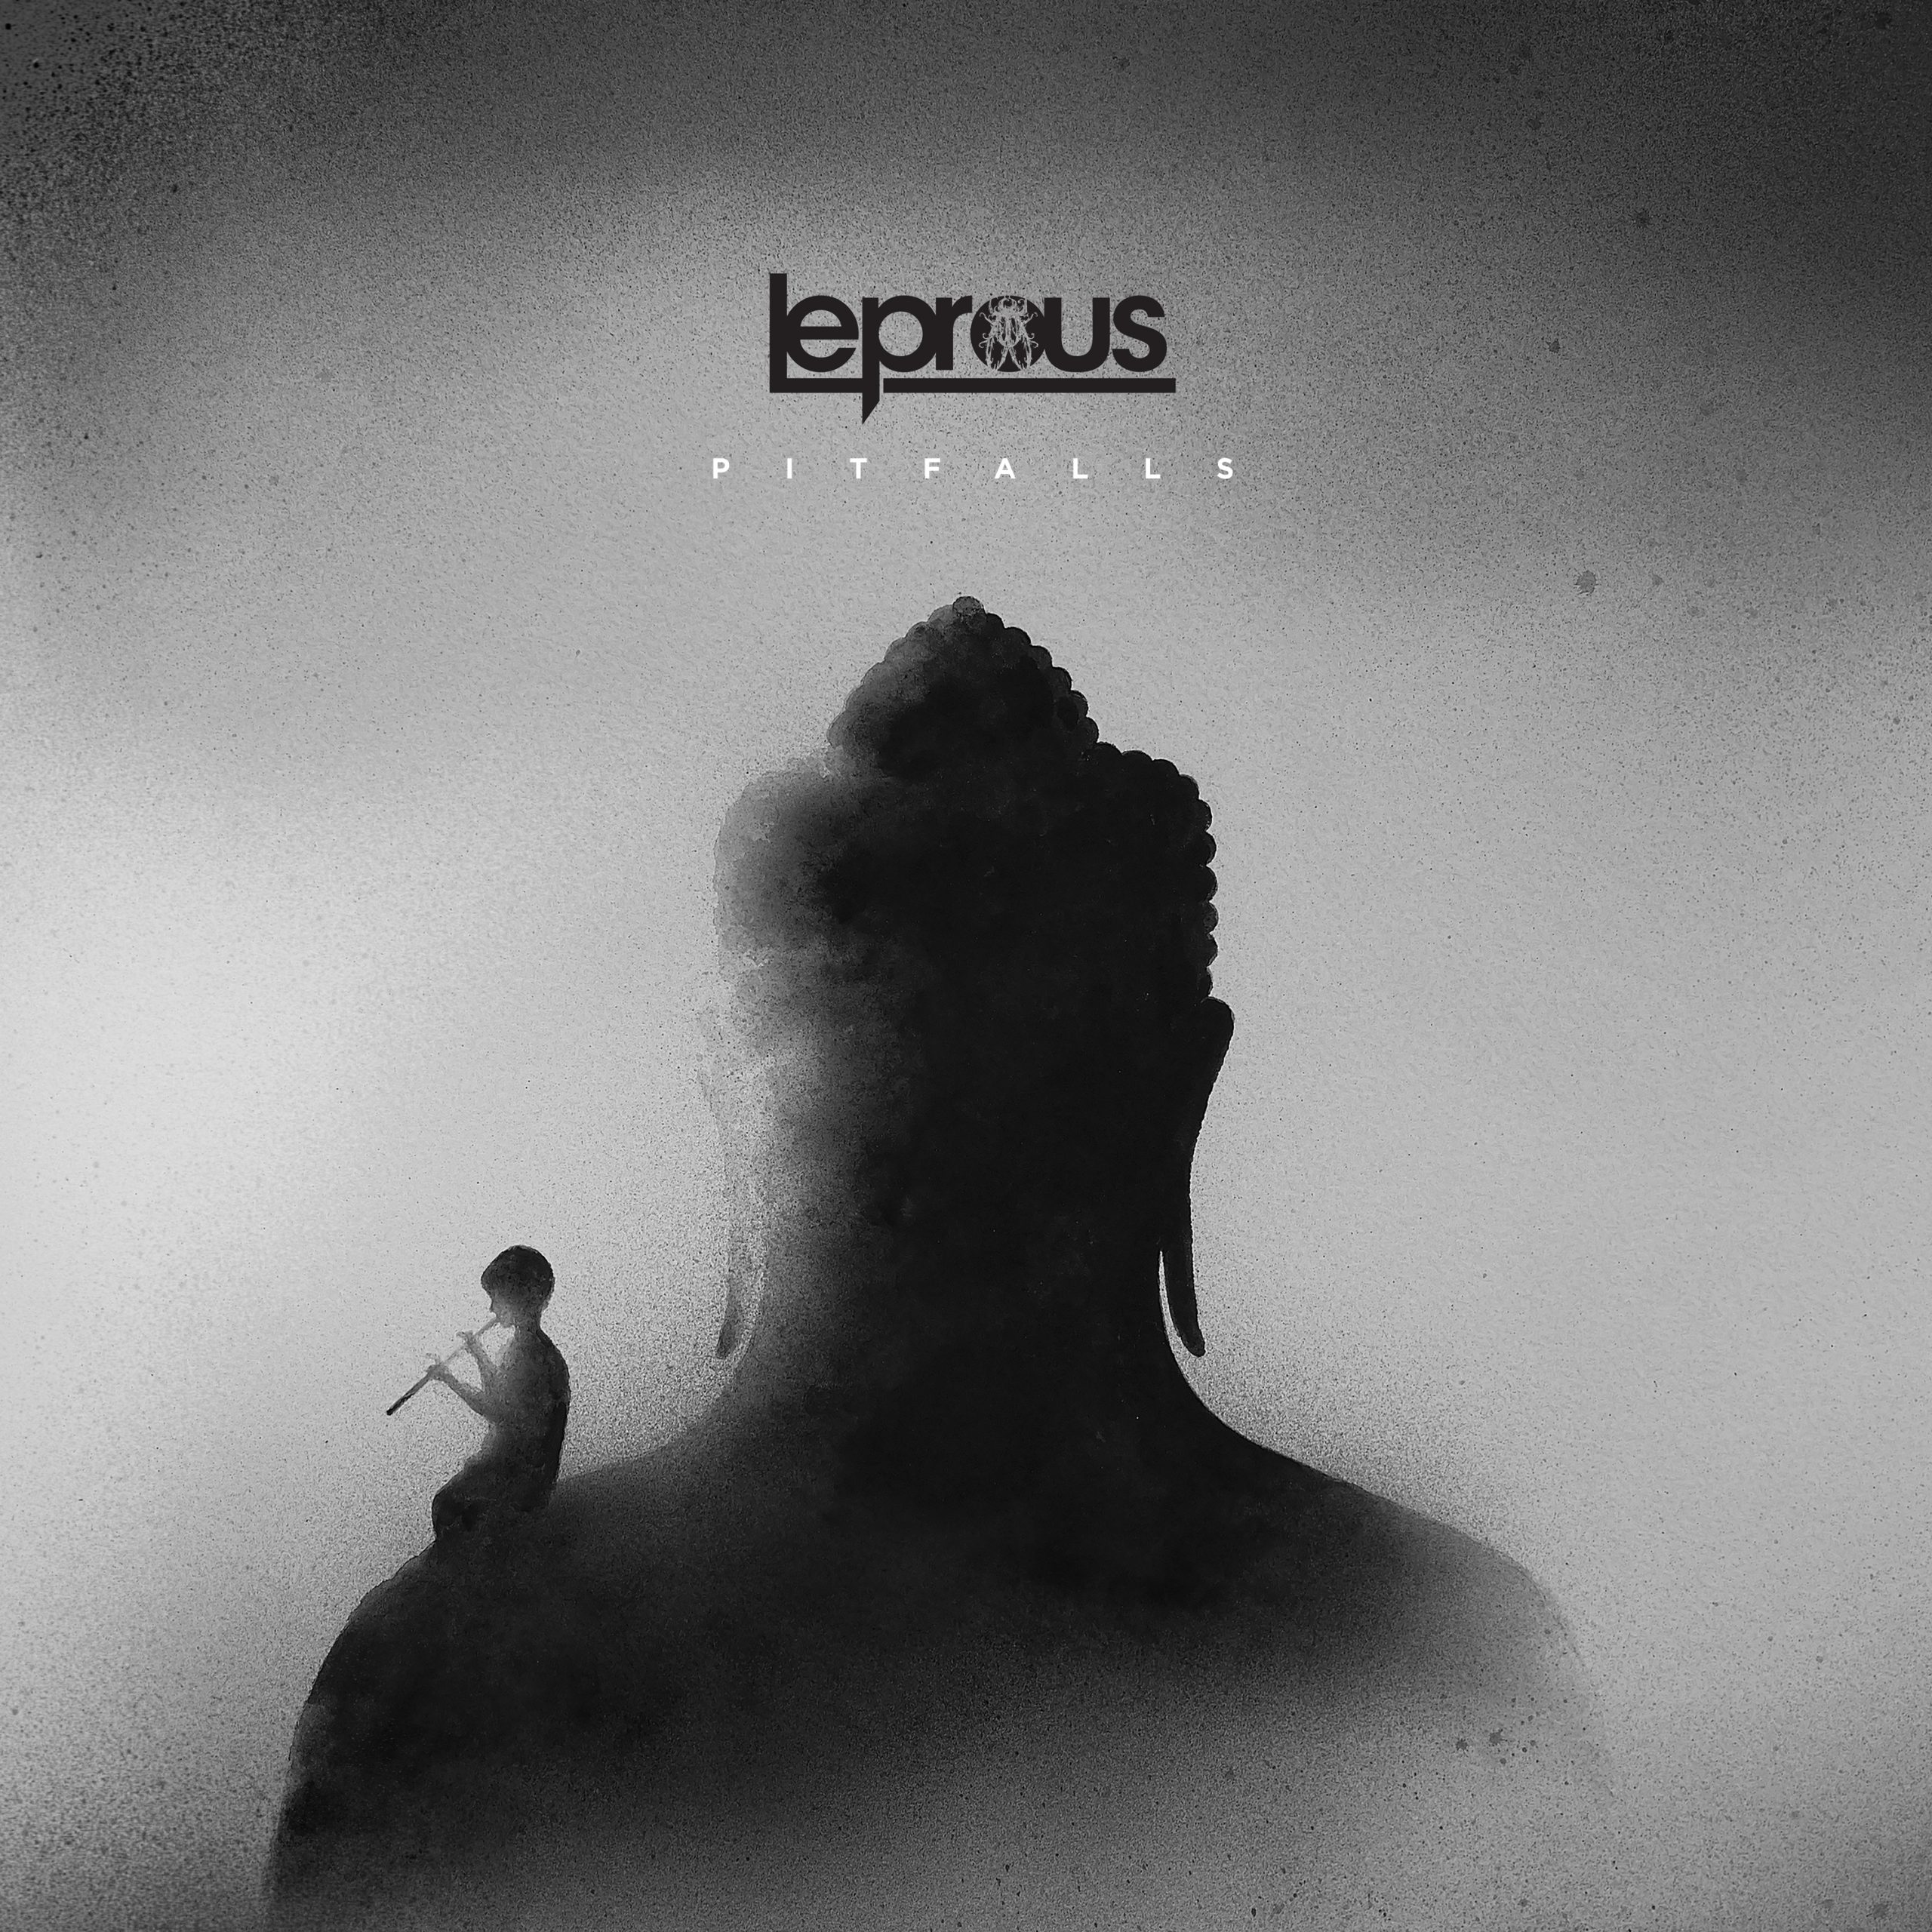 Leprous - Pitfalls | The Progspace